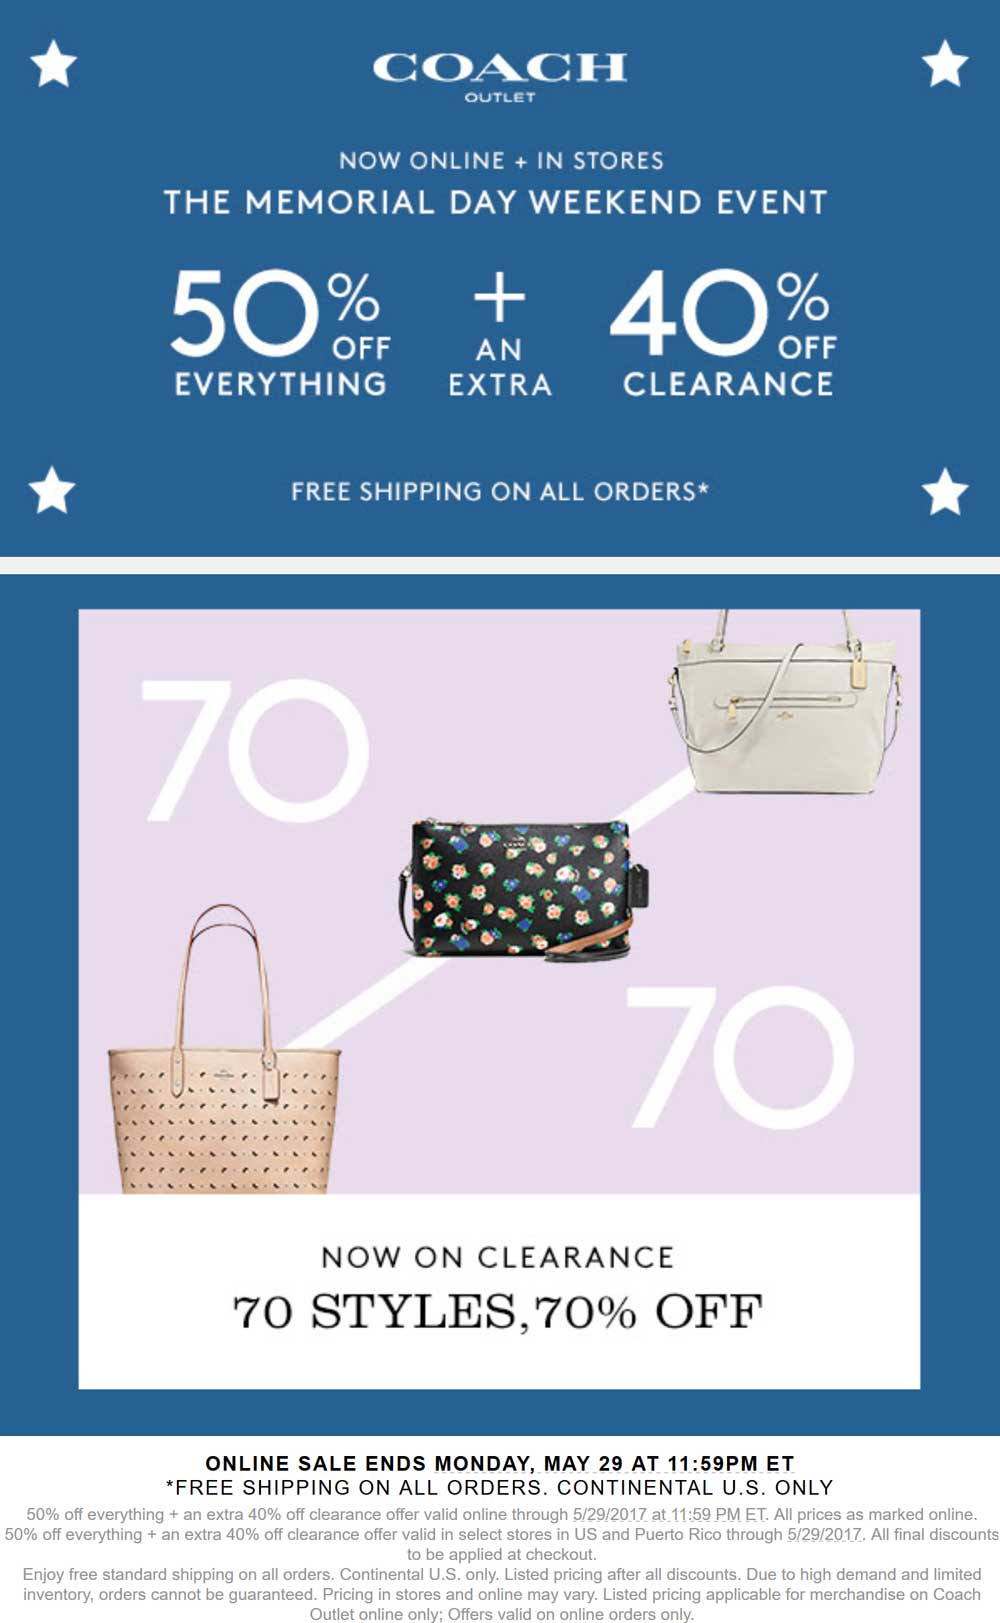 coach outlet free shipping promo code 2018